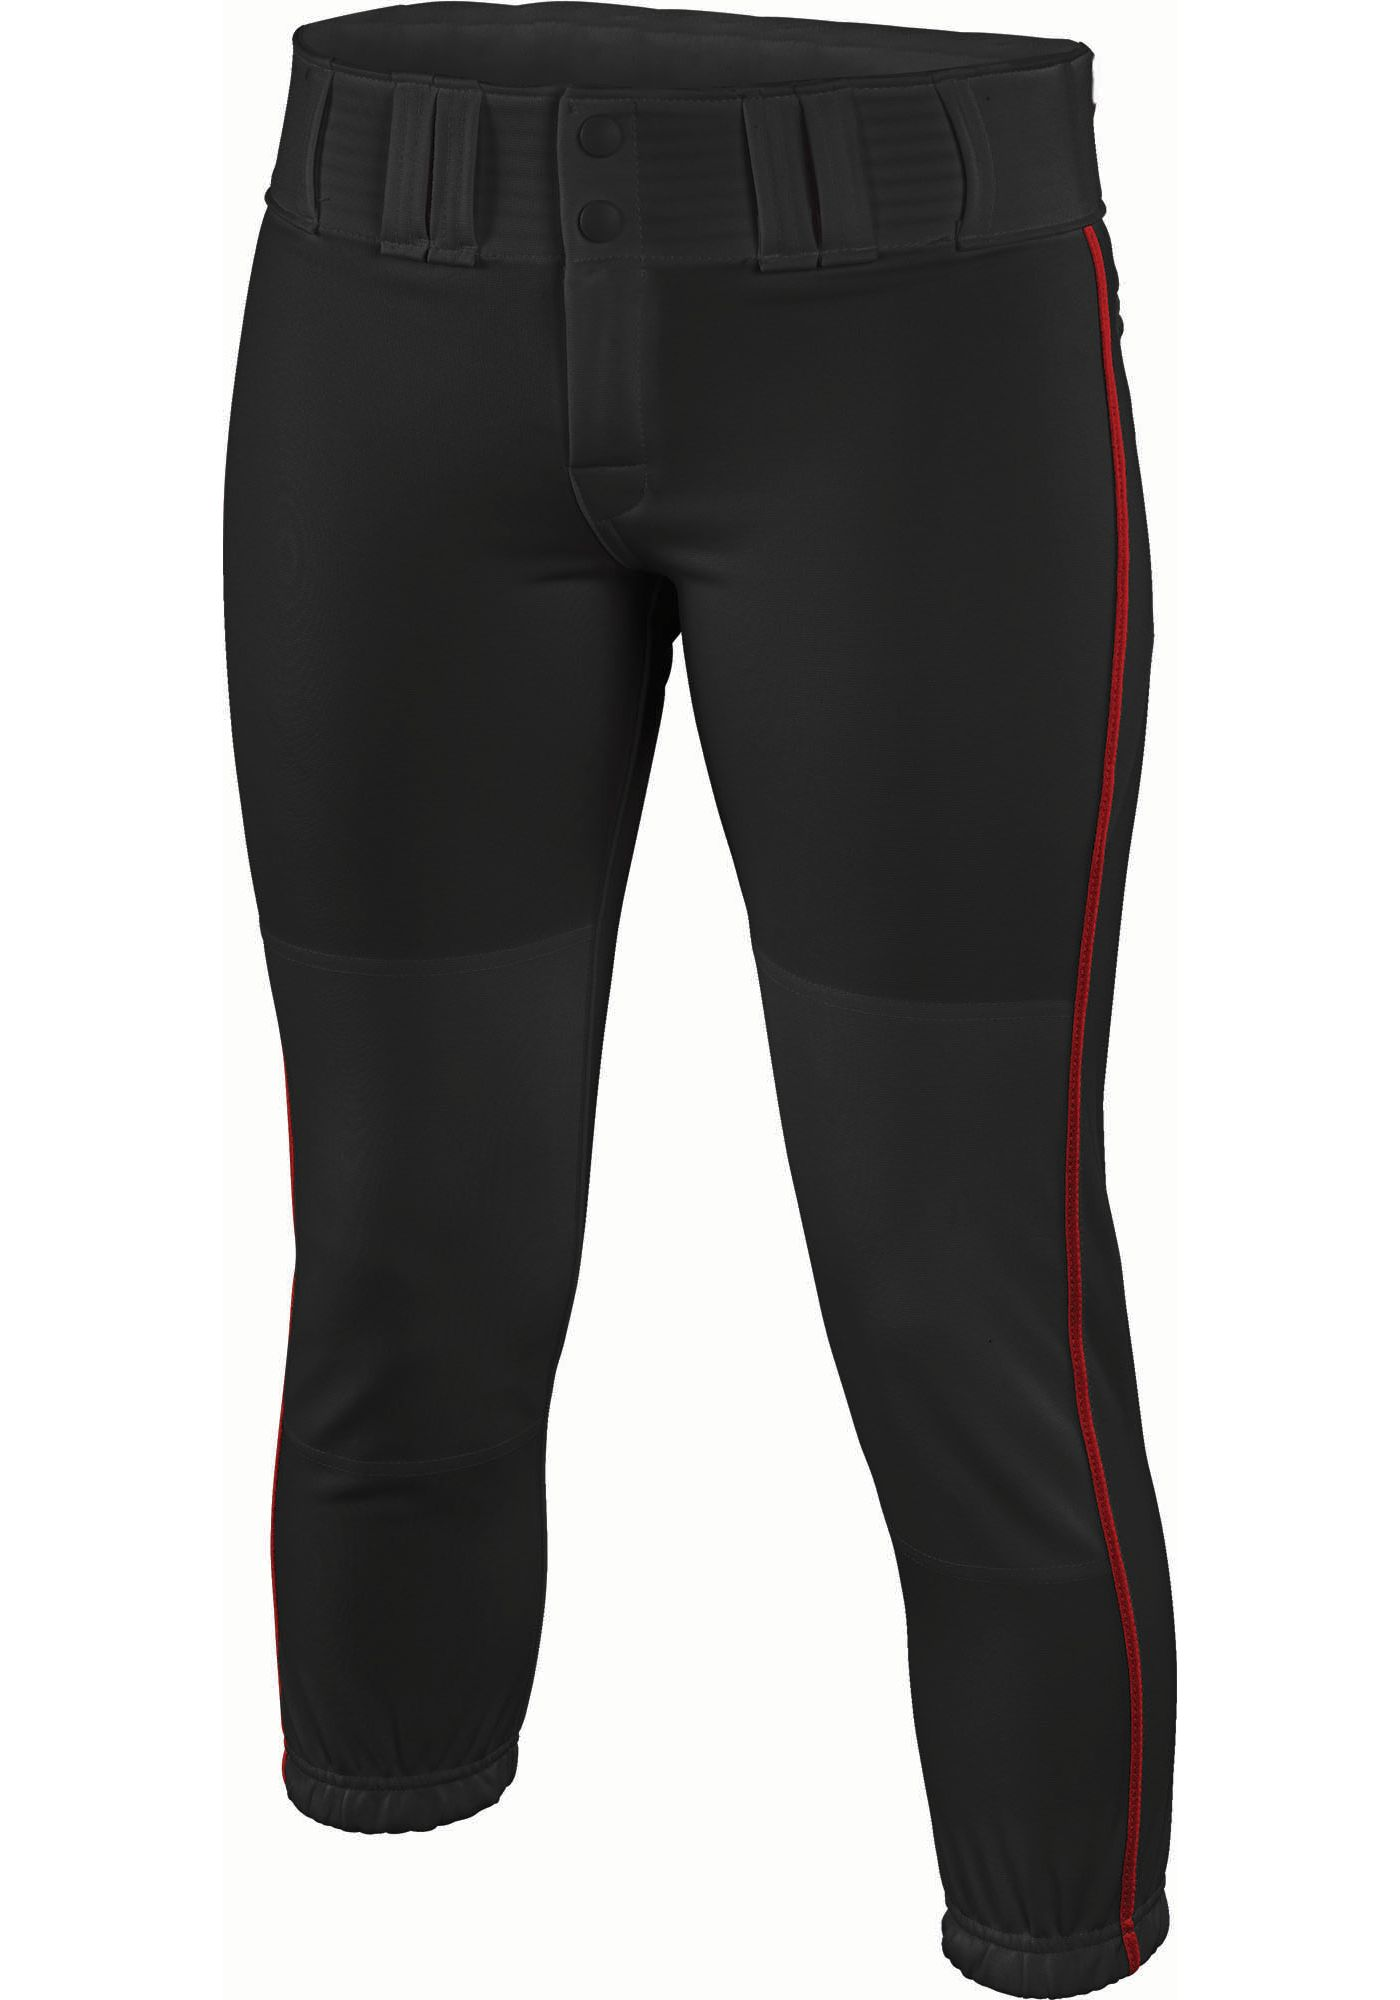 Easton Women's Pro Piped Fastpitch Pants